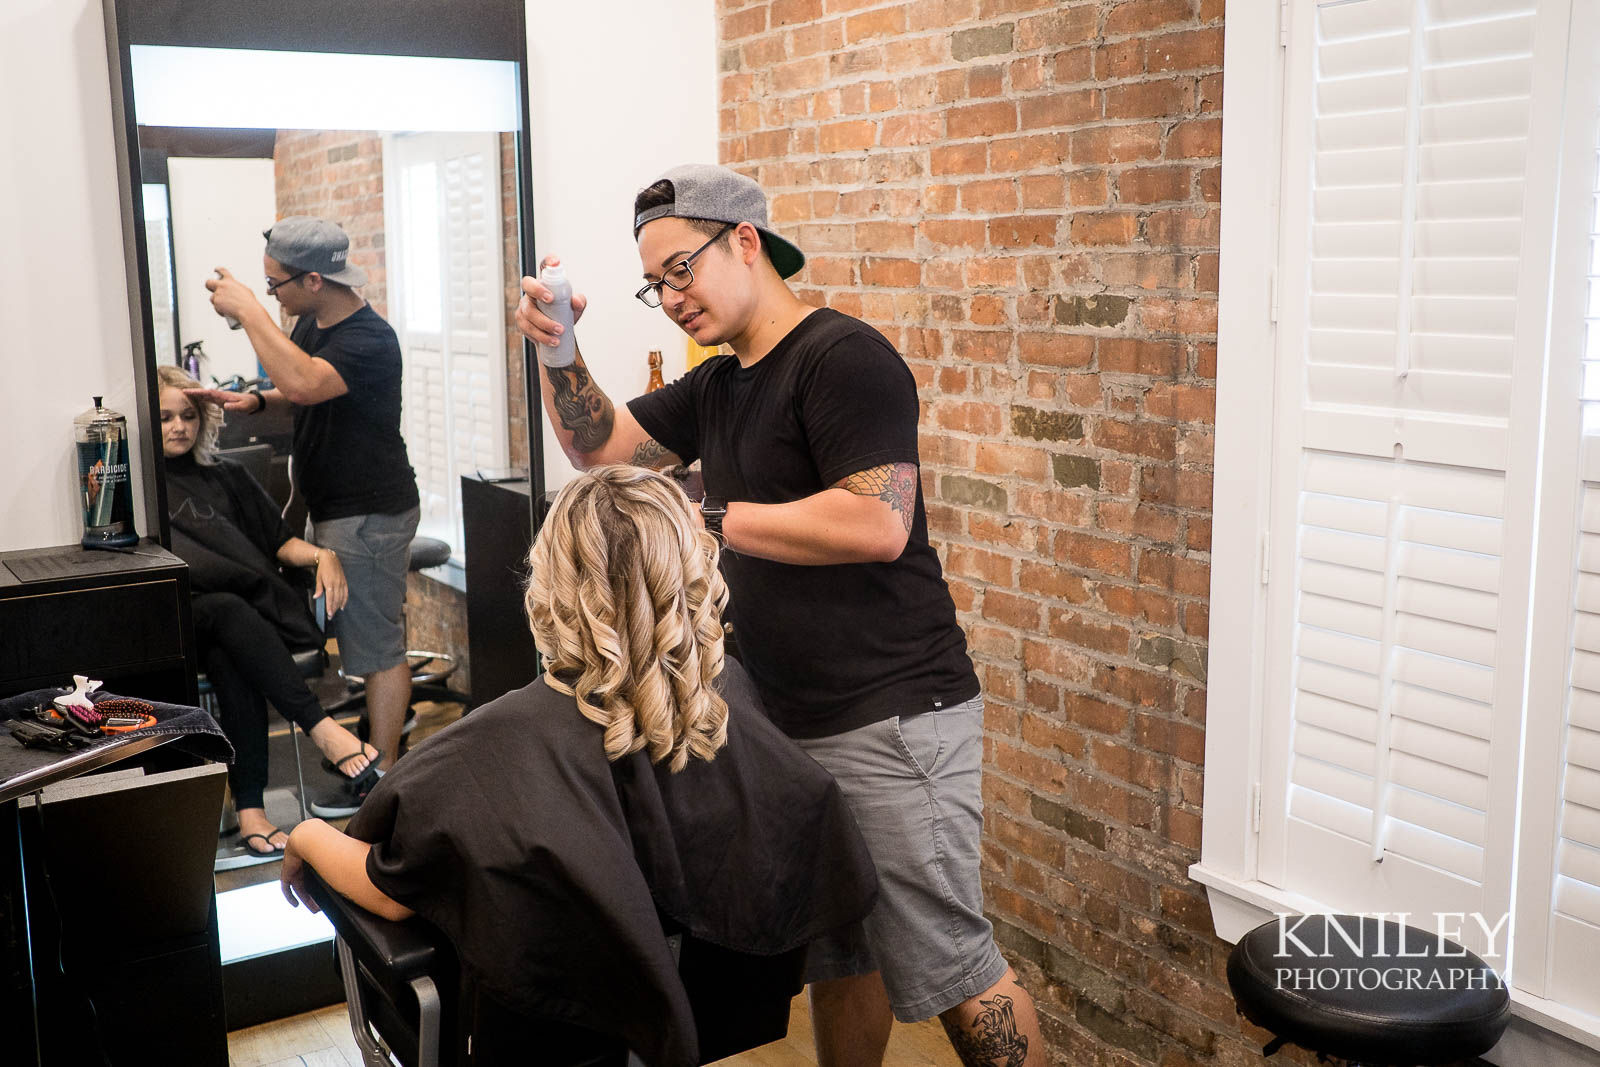 03-Ape-and-Canary-on-Strathallan-wedding-getting-ready-Rochester-NY-Wedding-Photography.jpg